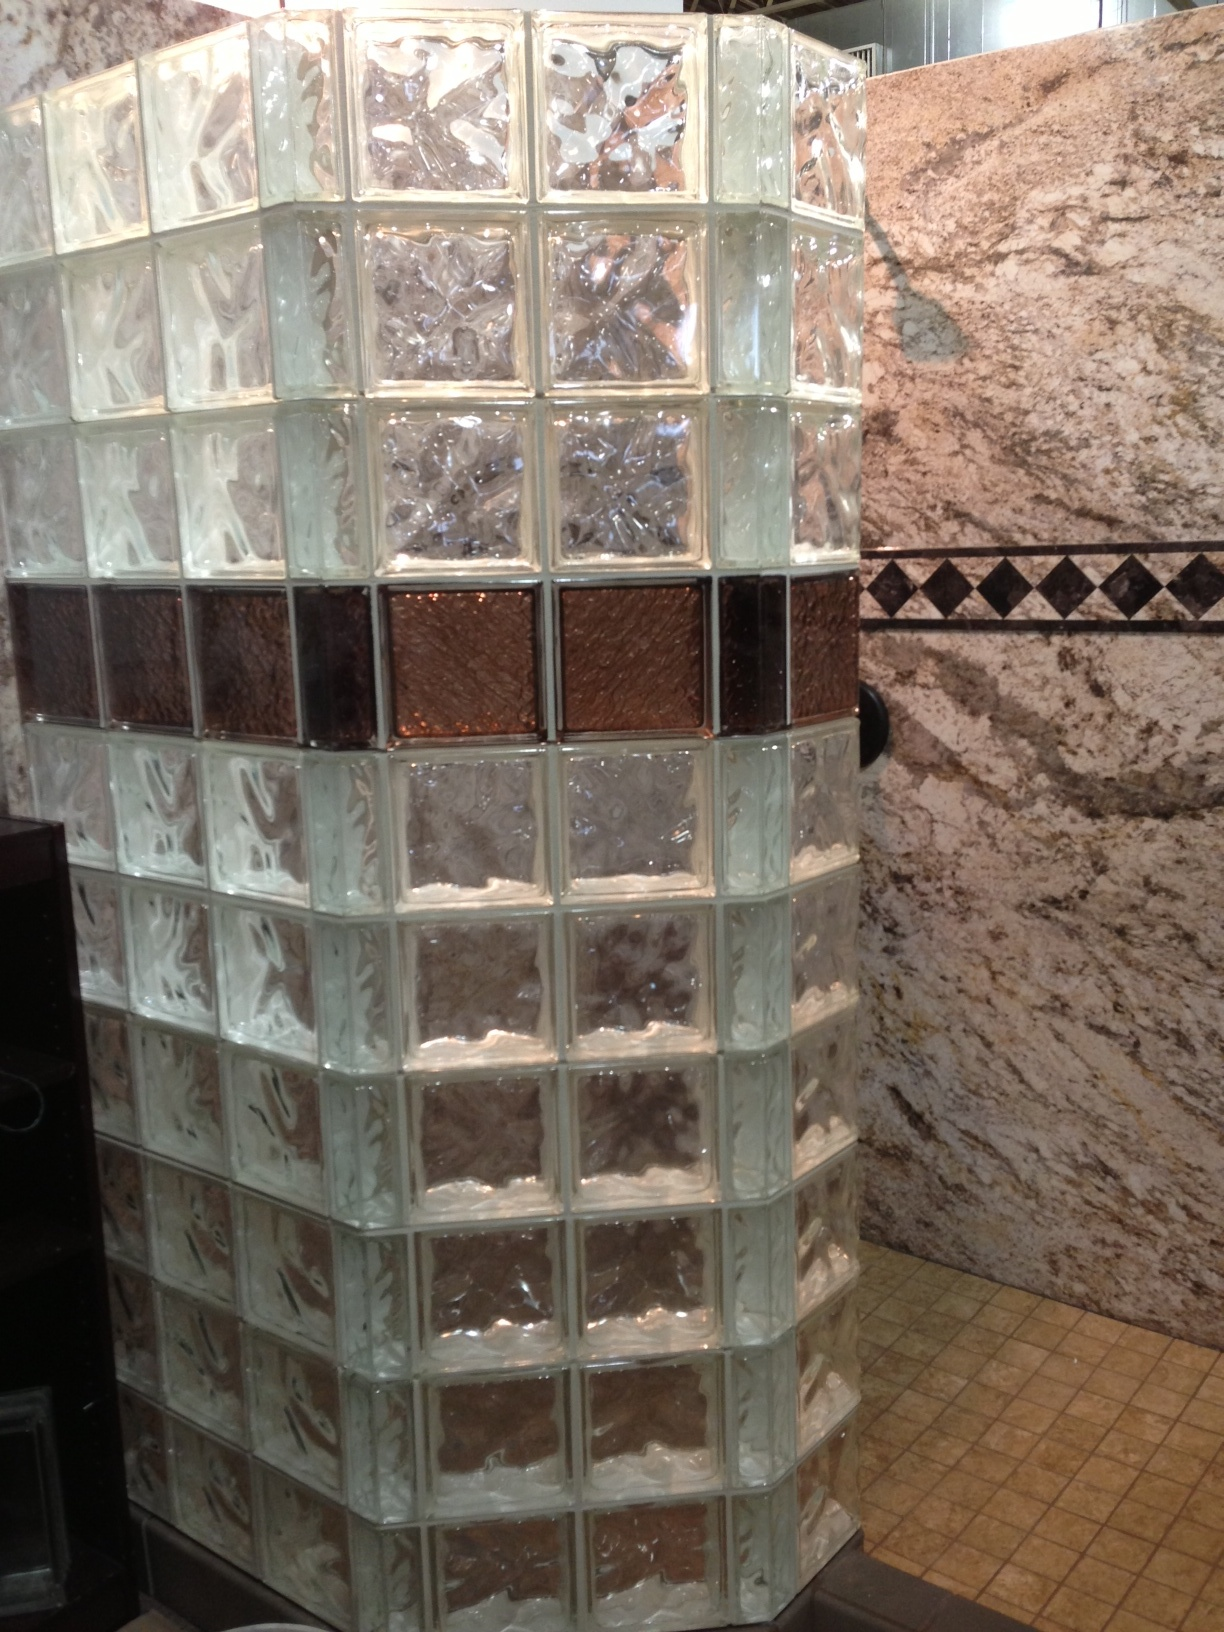 new colorful glass tile block showers and decorative wall